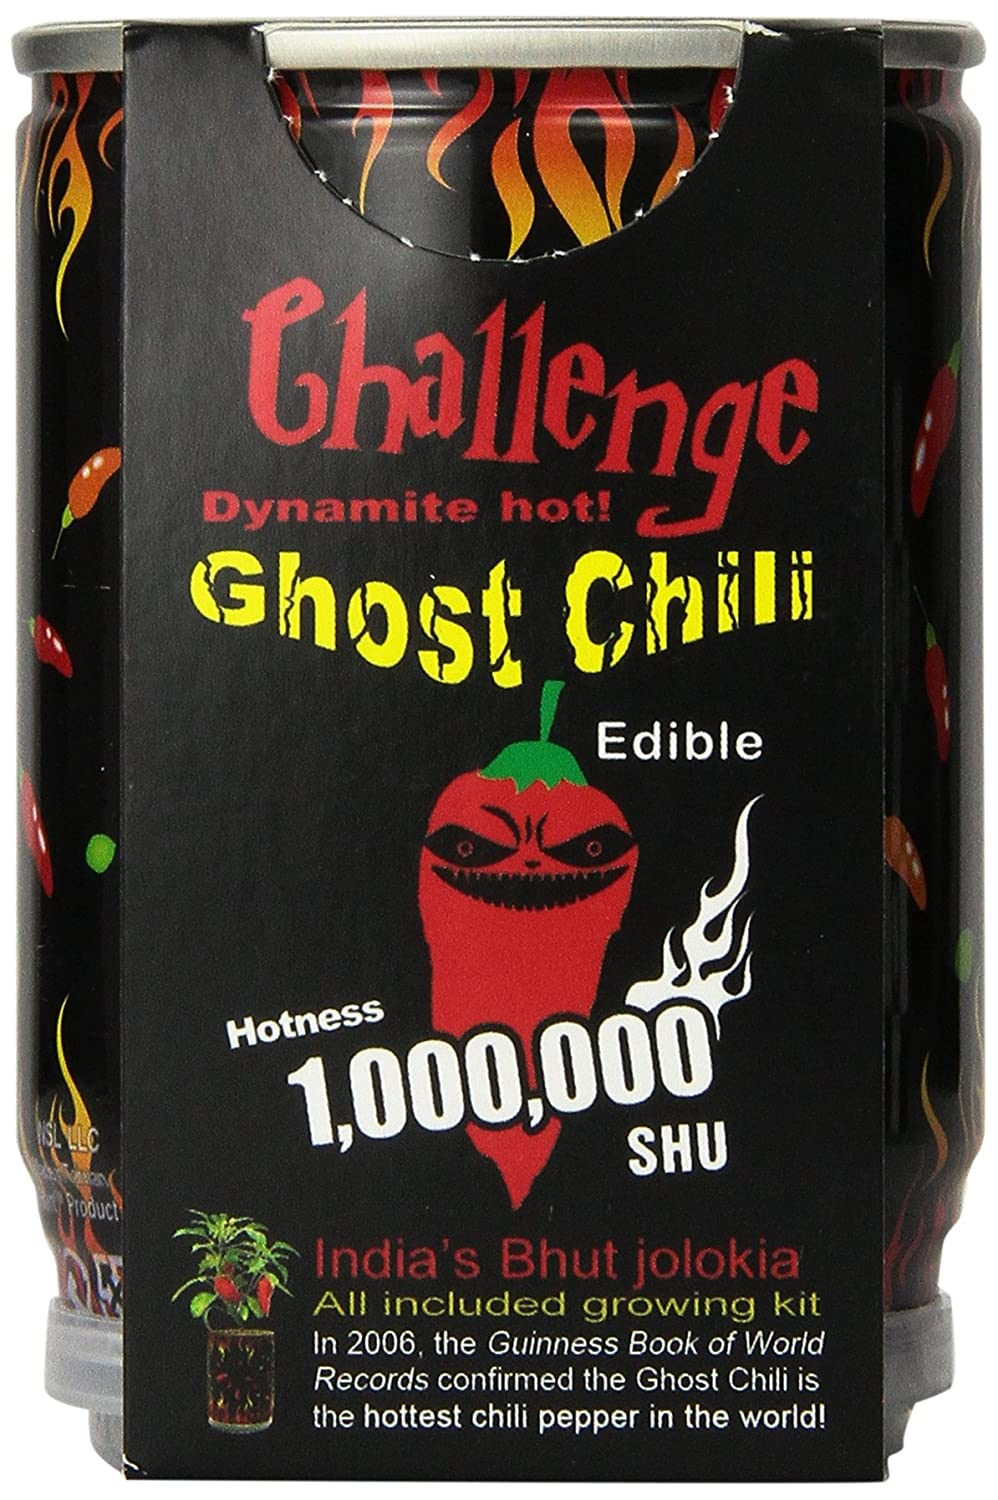 Ghost chili pepper - The hottest pepper in the world!!! 1,000,000 Heat Laval